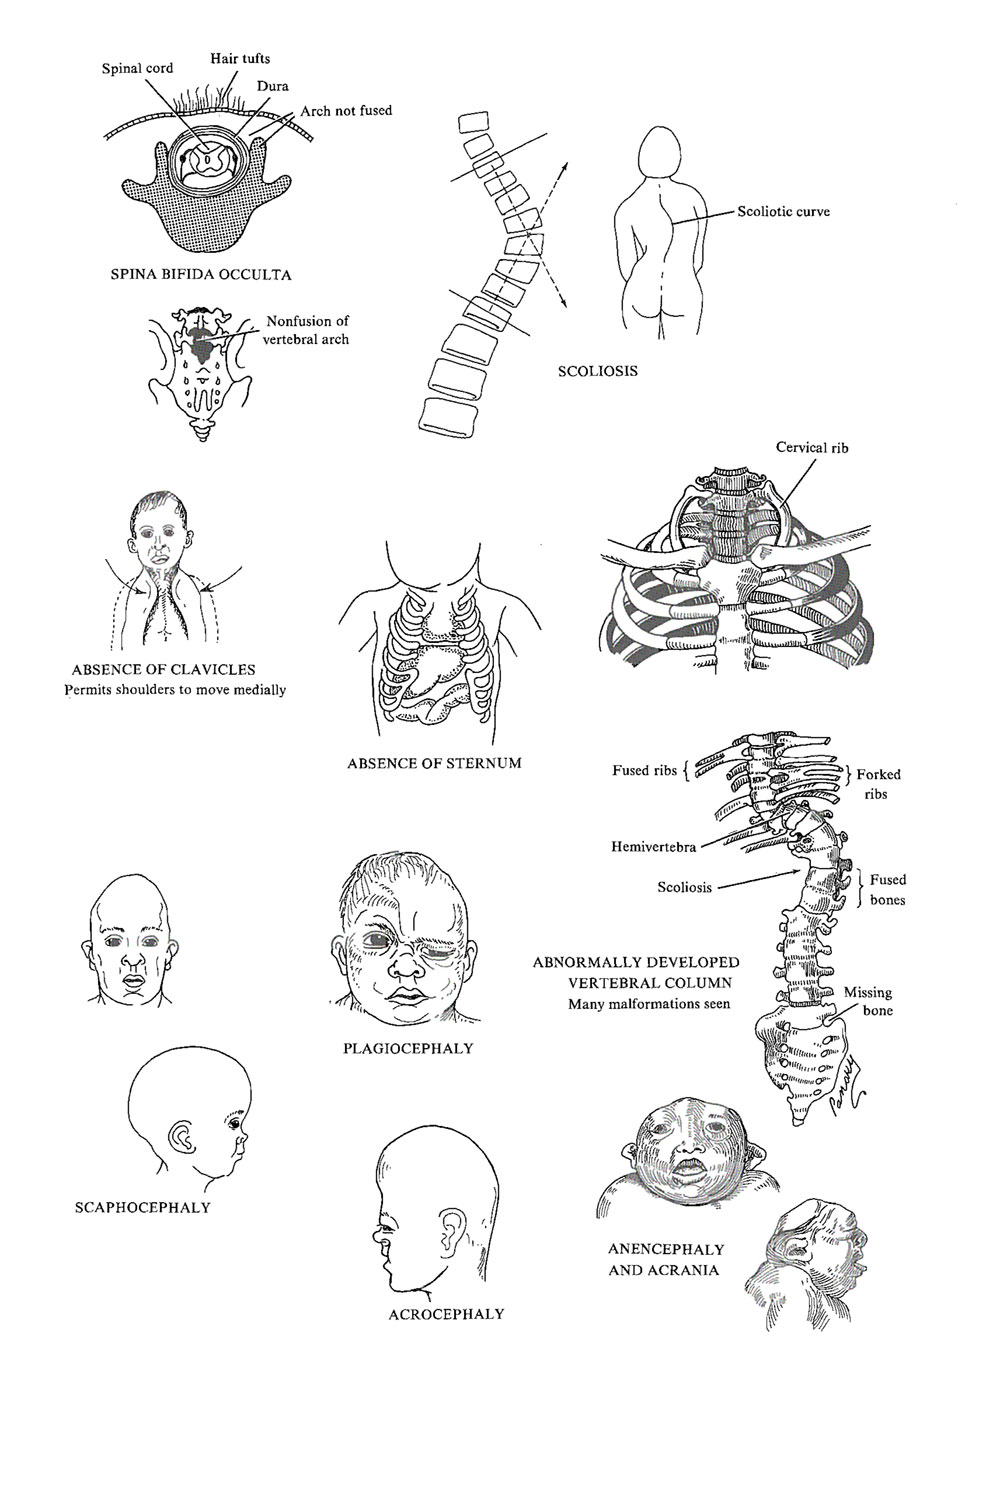 congenital malformations of  the skeletal system: image #1